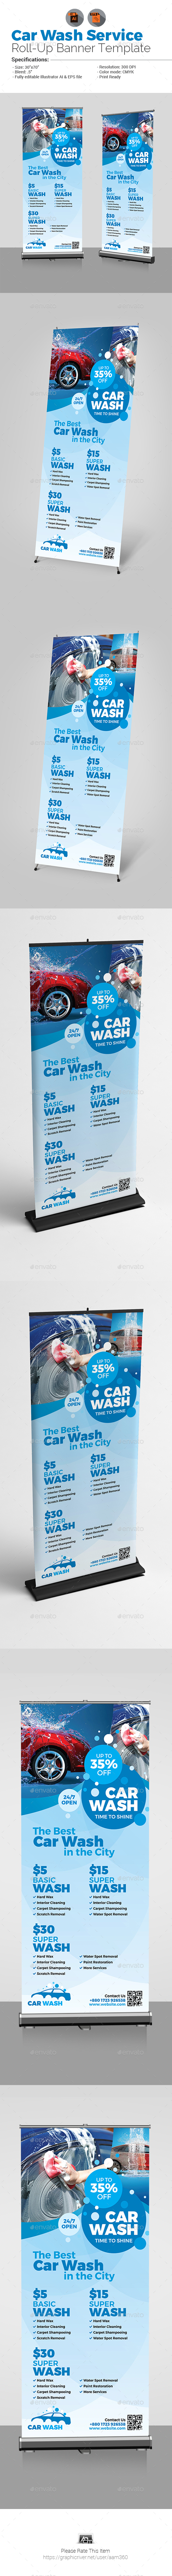 Car wash Roll-Up Banner Template - Signage Print Templates